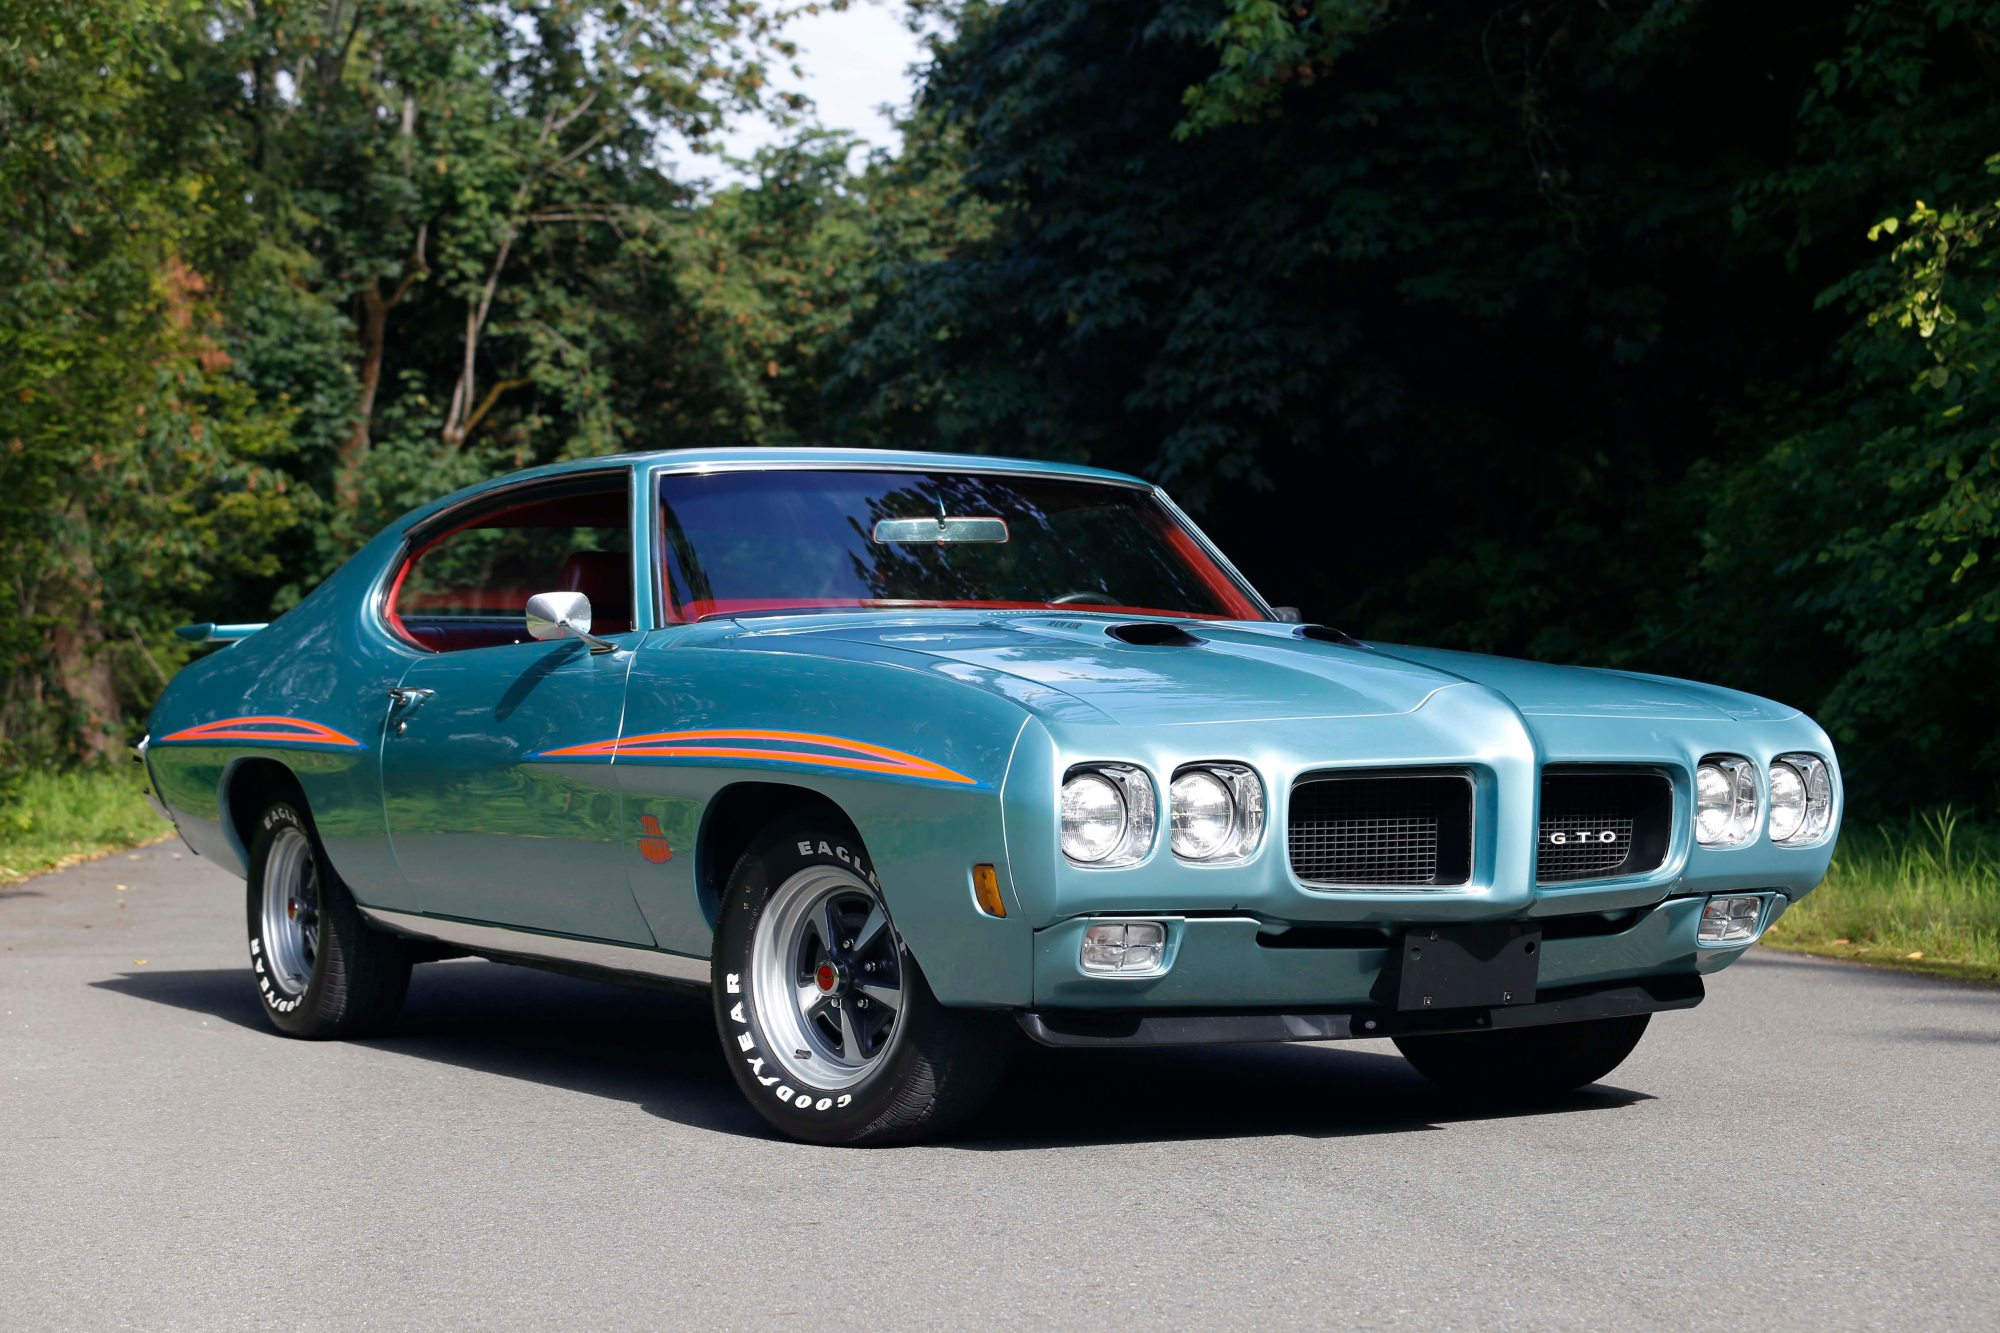 hight resolution of wiring diagram besides 1970 pontiac gto judge on 1970 pontiac le wiring diagrams besides chevy 350 firing order also 68 ford mustang gt